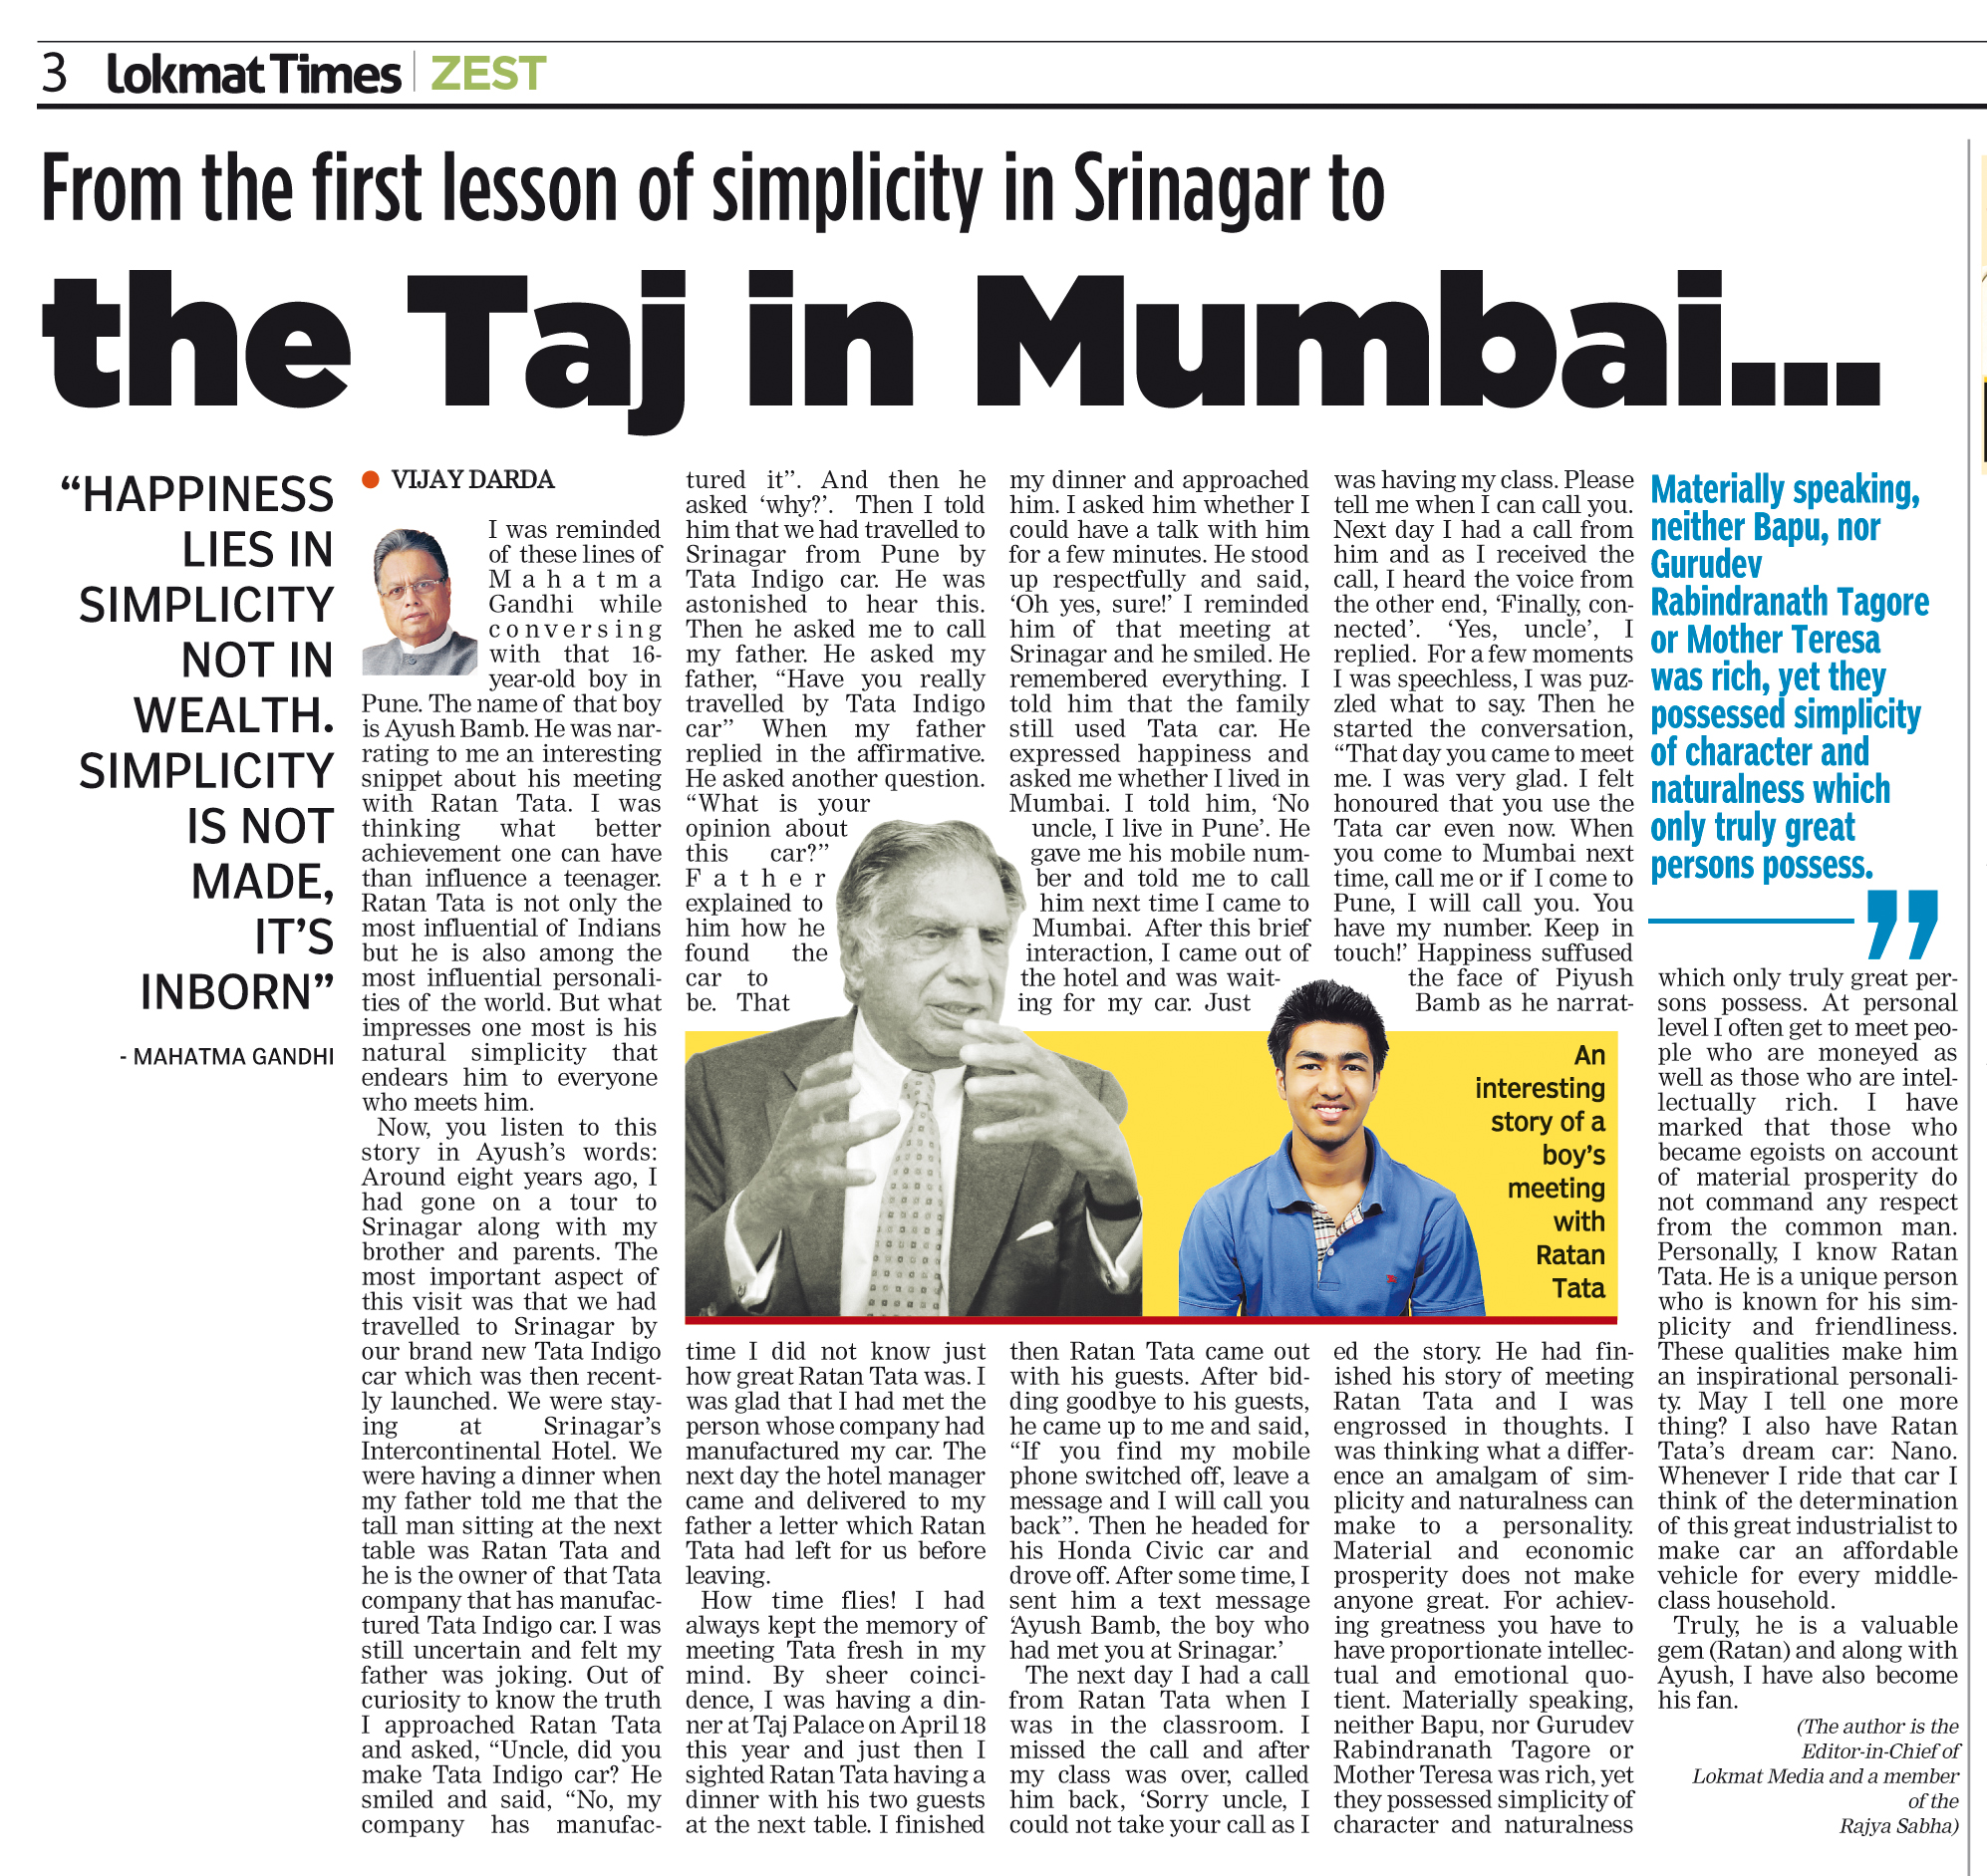 From the first lesson of simplicity in Srinagar to the Taj in Mumbai...